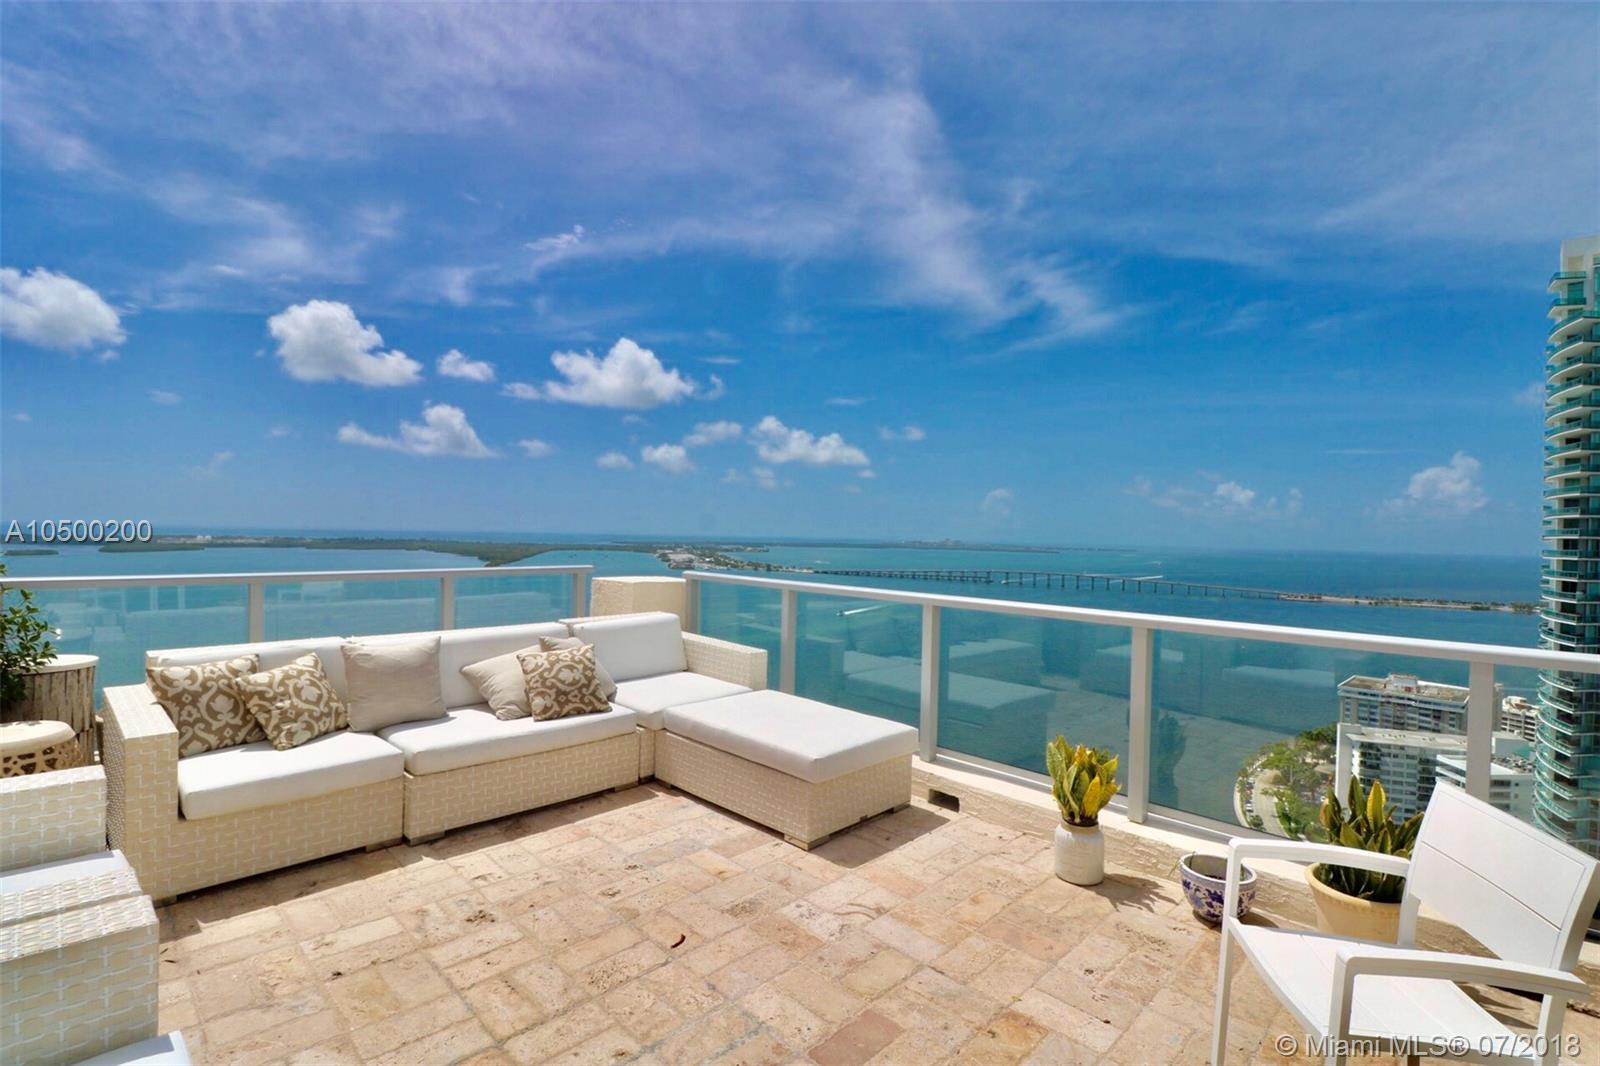 Spectacular open terrace penthouse opportunity with amazing Bay Views in a spacious 3 bedroom, 2 1/2 bath at the Mark. Master bedroom has a great sitting area.  Featuring marble floors throughout, Italian kitchen cabinetry. Automated window treatment.  Simply best location walking distance to shops, restaurants, metro and Brickell City Centre.  This building was just completely renovated with amenities such as gym, spa, pools. Come enjoy this very rare terrace with bay and city views.